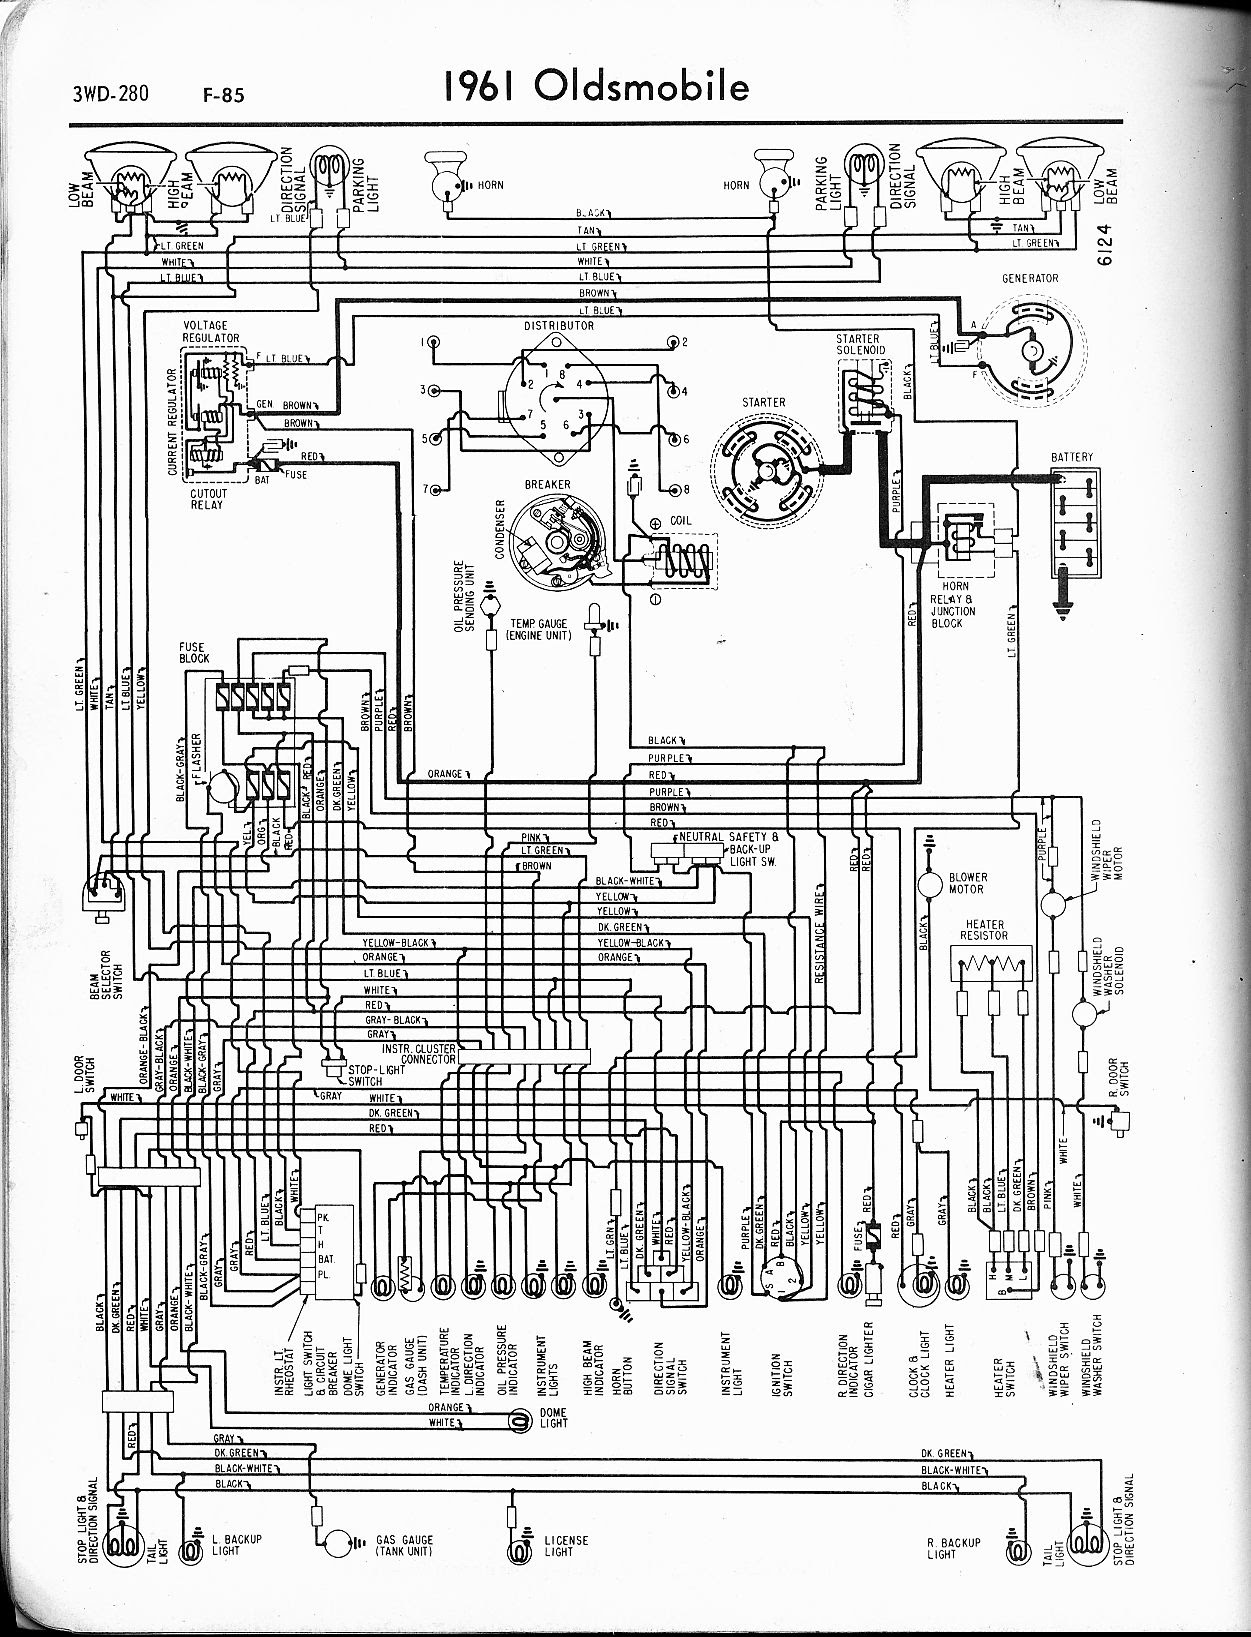 Diagram 1950 Oldsmobile Wiring Diagrams Full Version Hd Quality Wiring Diagrams Rewiringka Queidue It